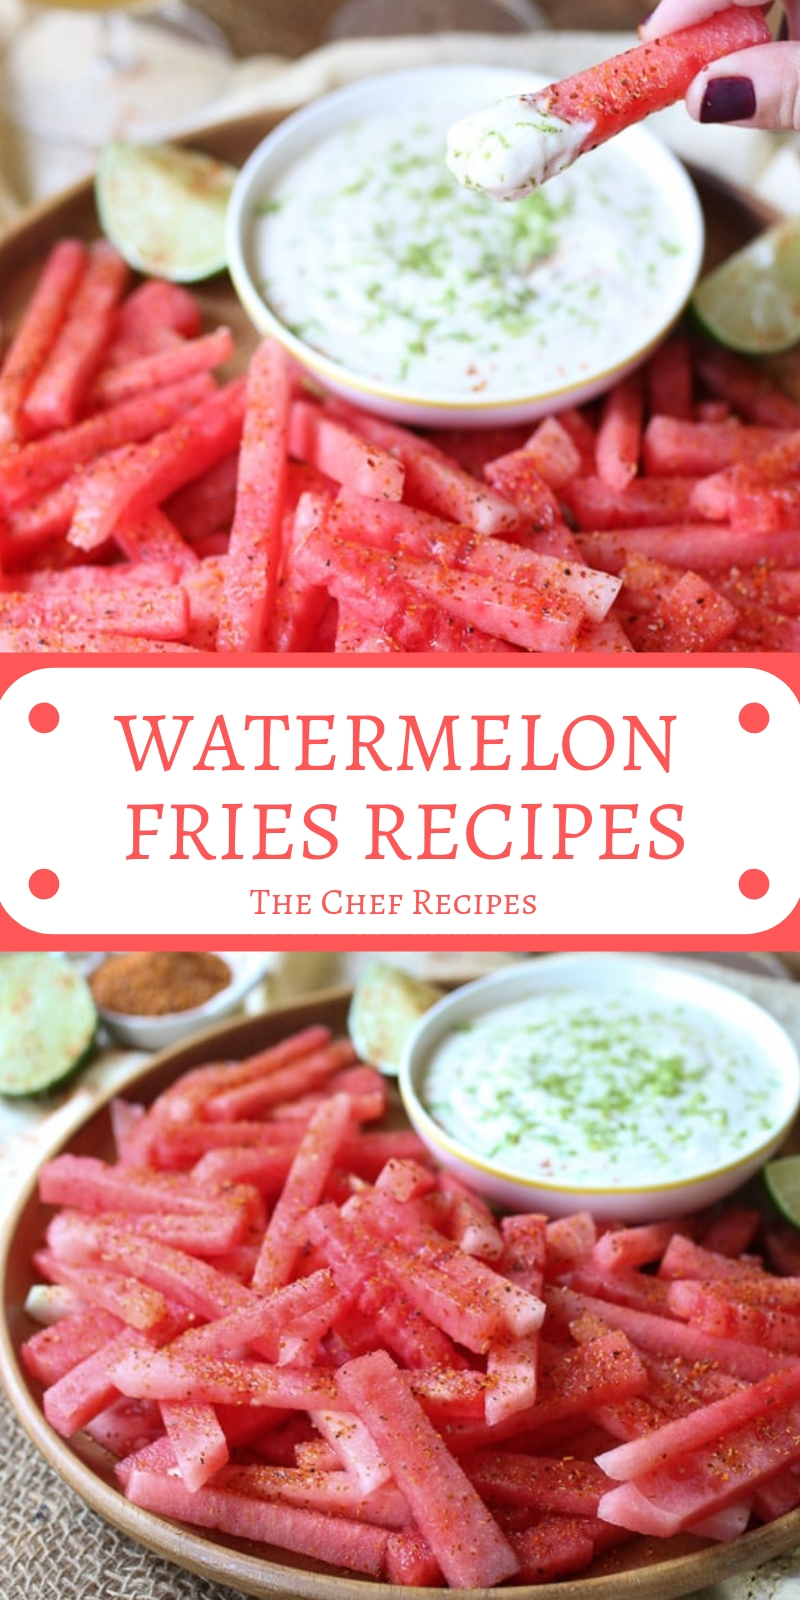 WATERMELON FRIES RECIPES